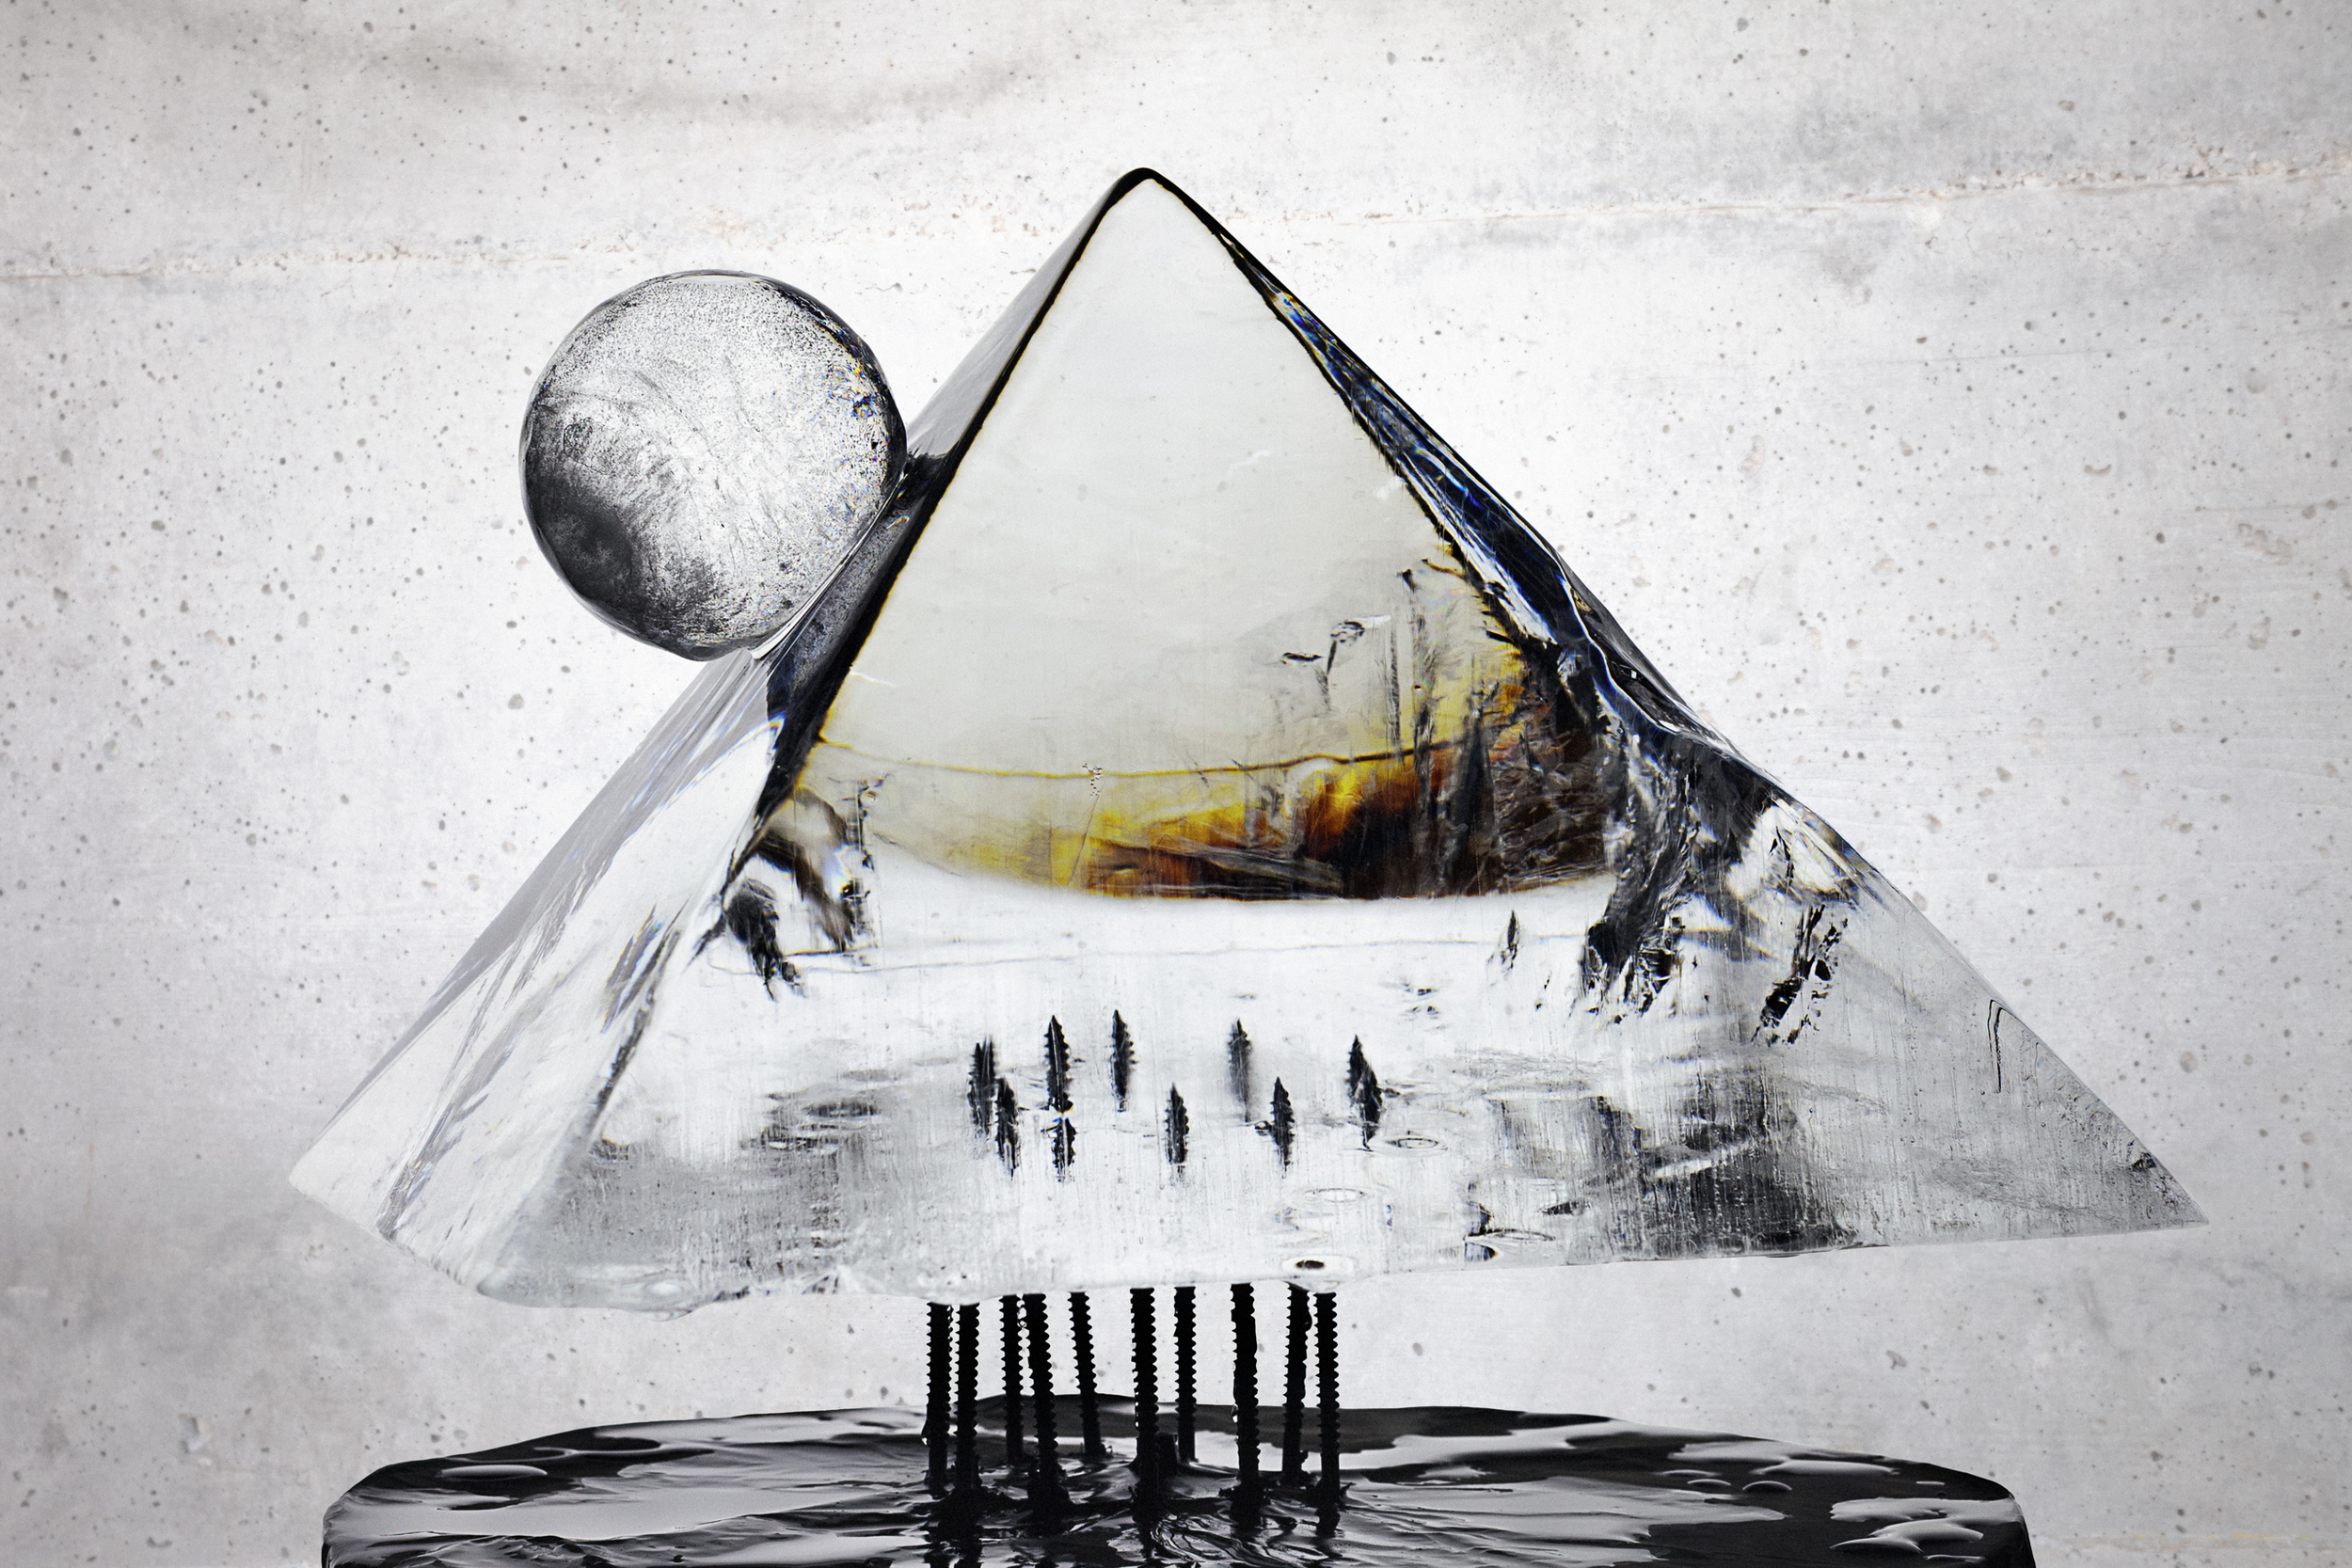 Ice Plate 2, Private works